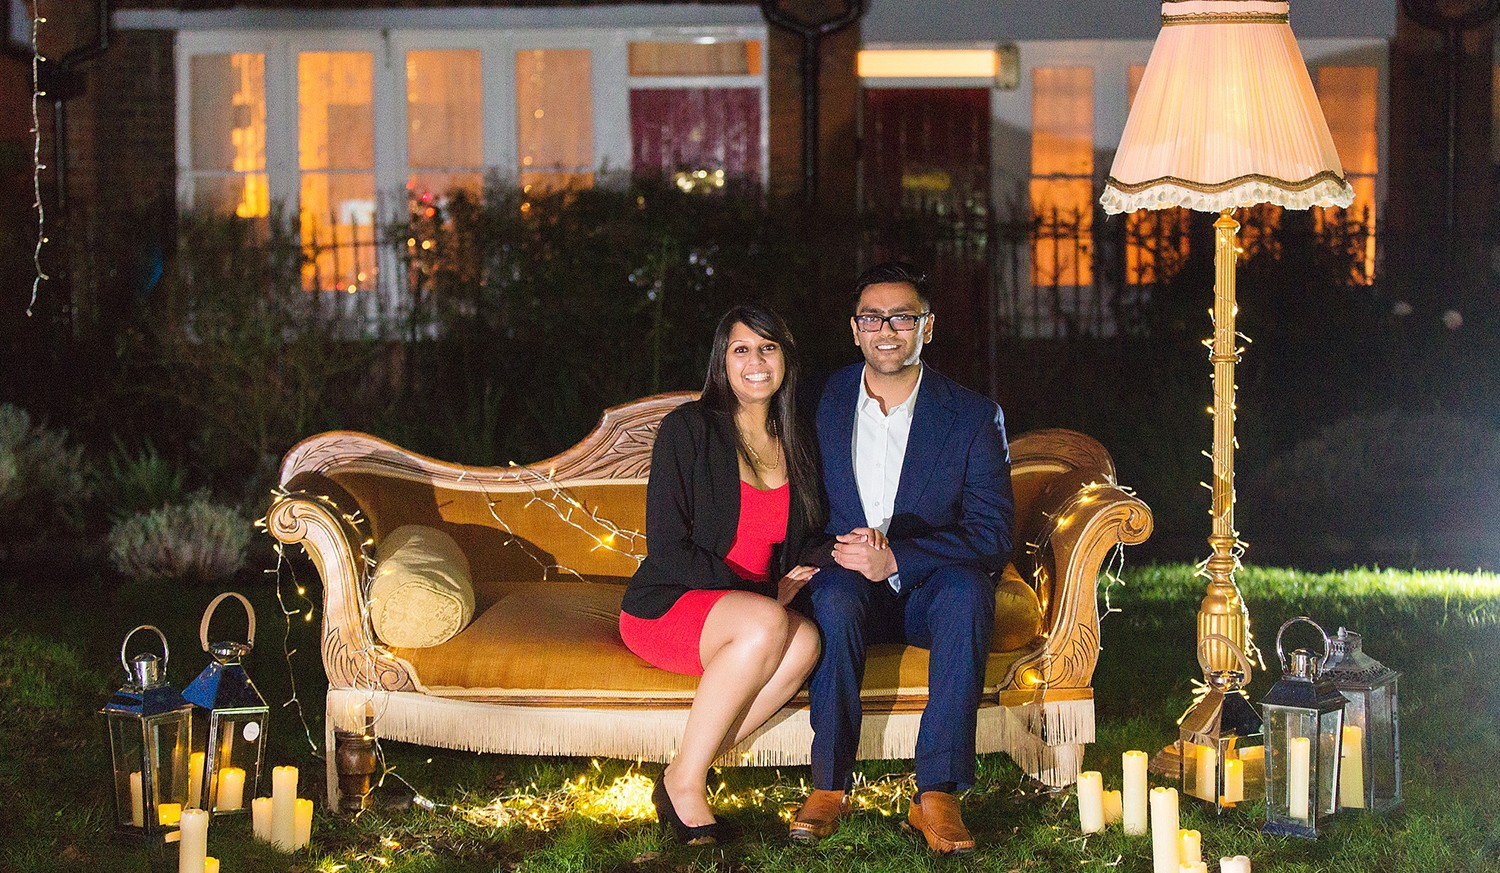 Mitesh and Anisha engagement photo on Friends couch